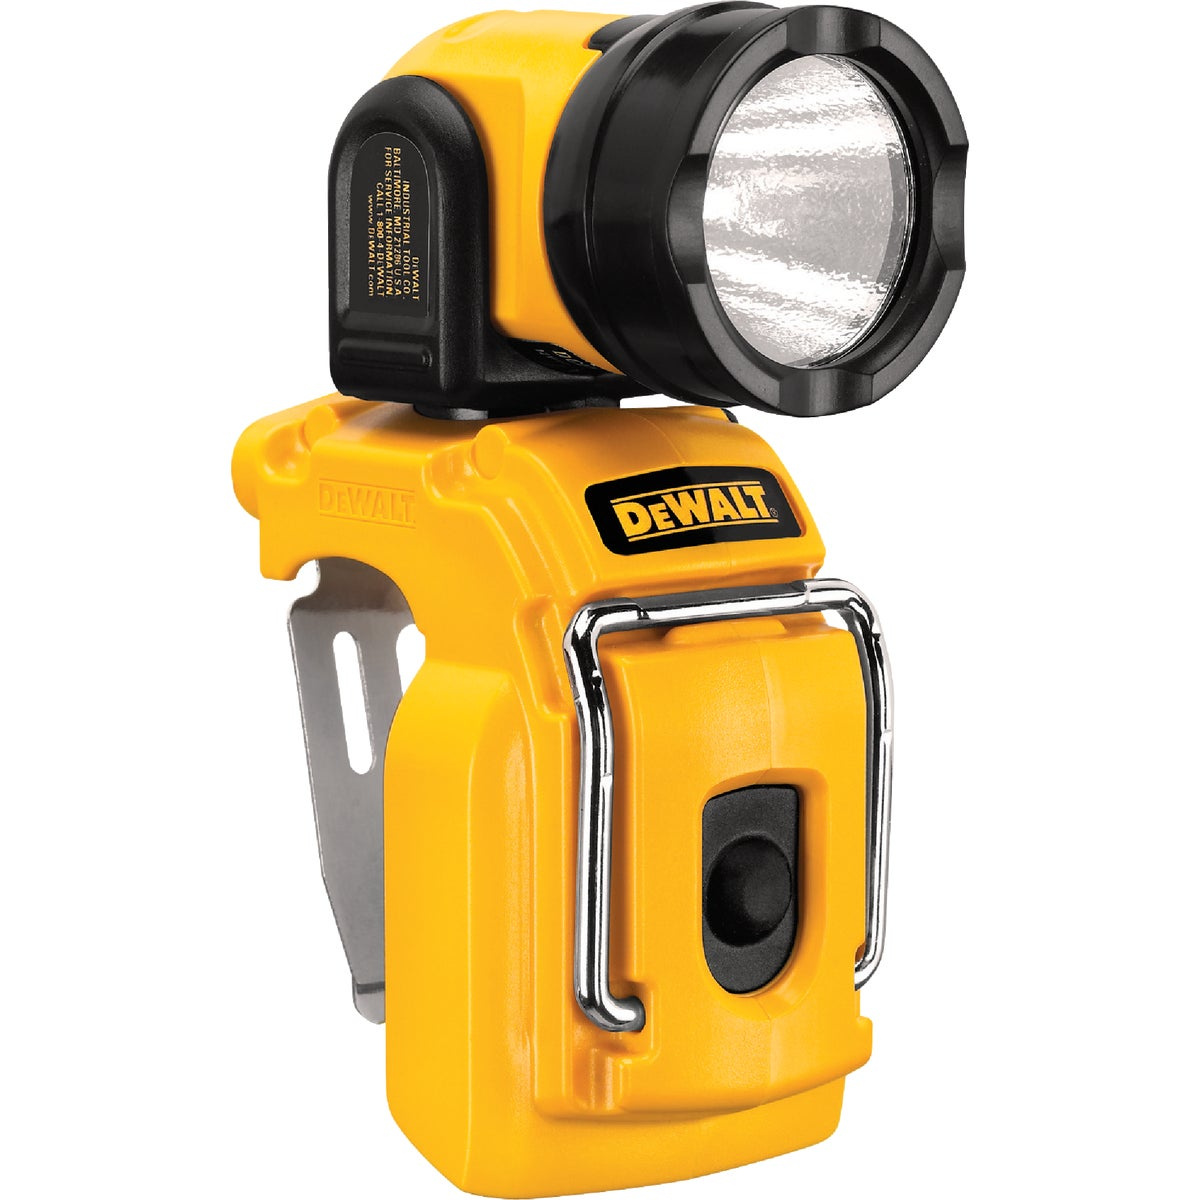 12V LED FLASHLIGHT - DCL510 by DeWalt